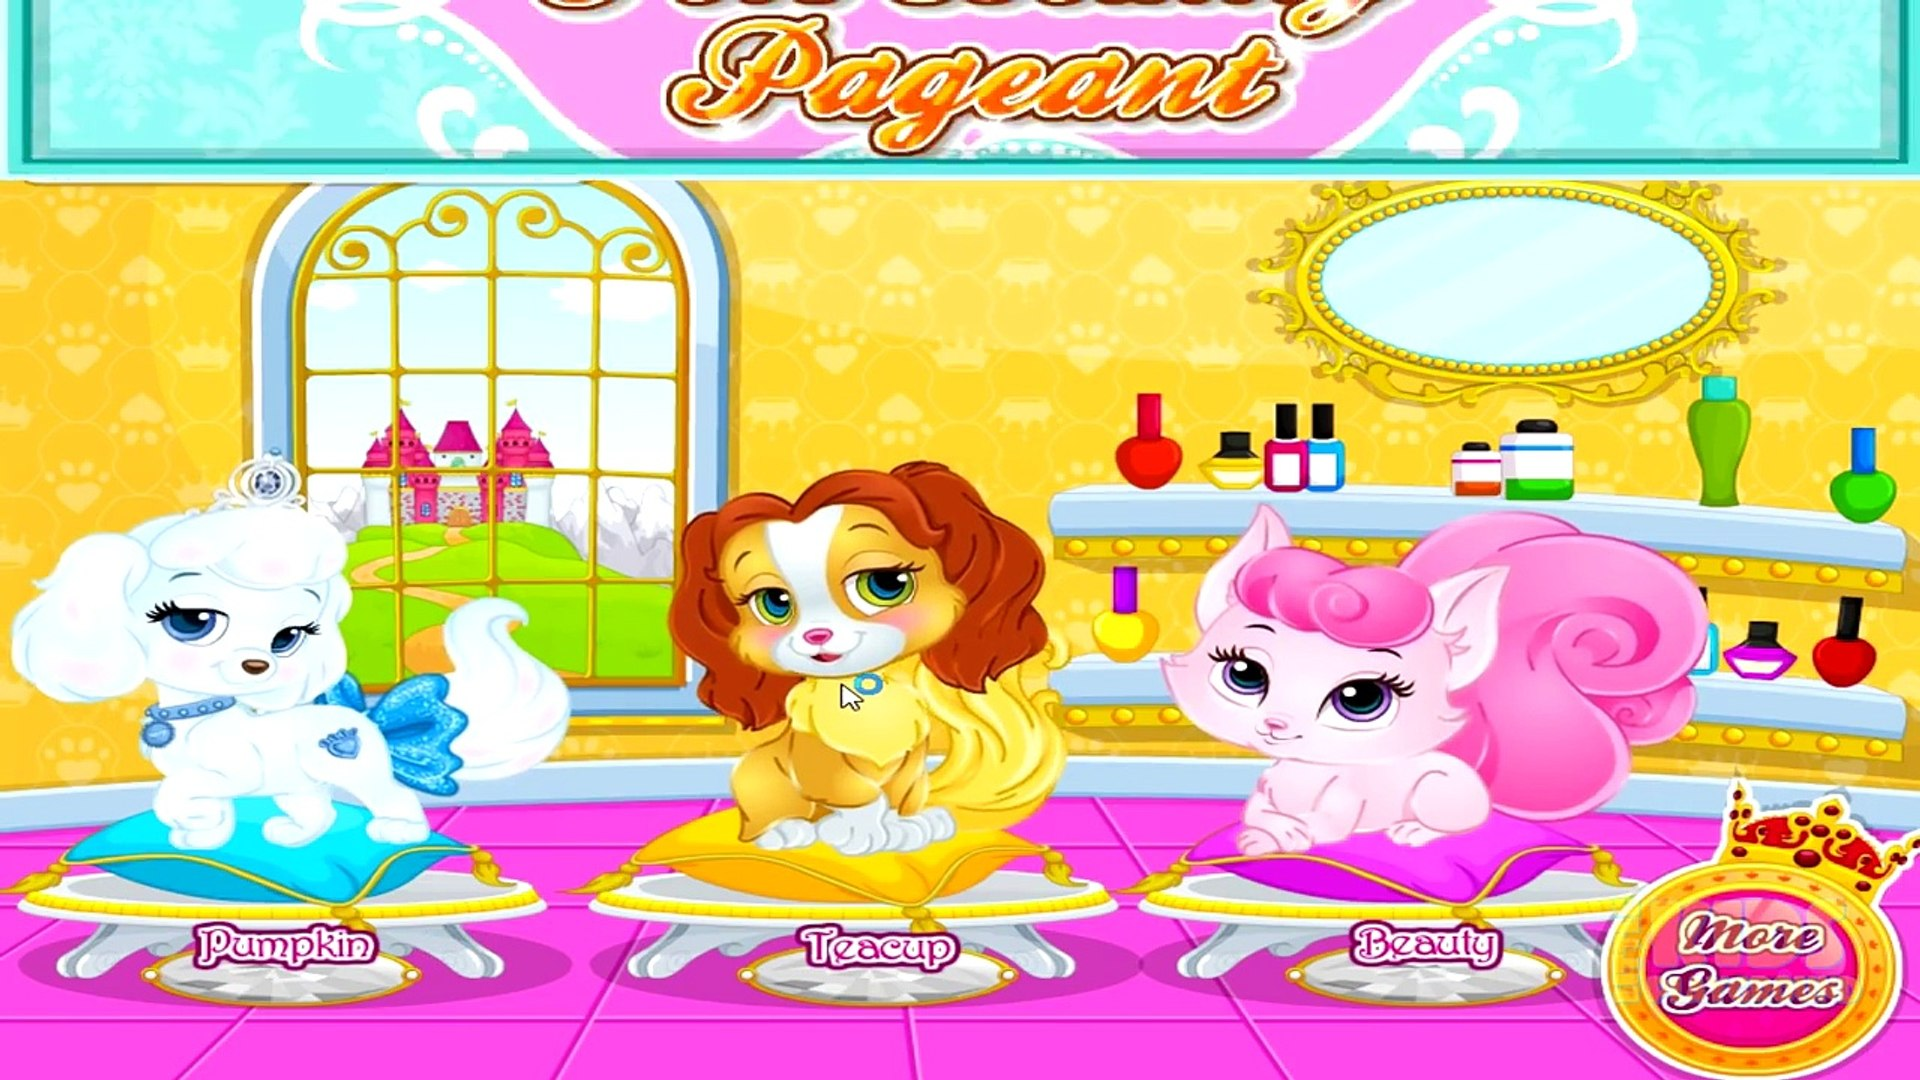 Princesses Cinderella Aurora and Belle Pets Beauty Pageant - Baby Barbie Game for Kids-PzI31CJwVlk